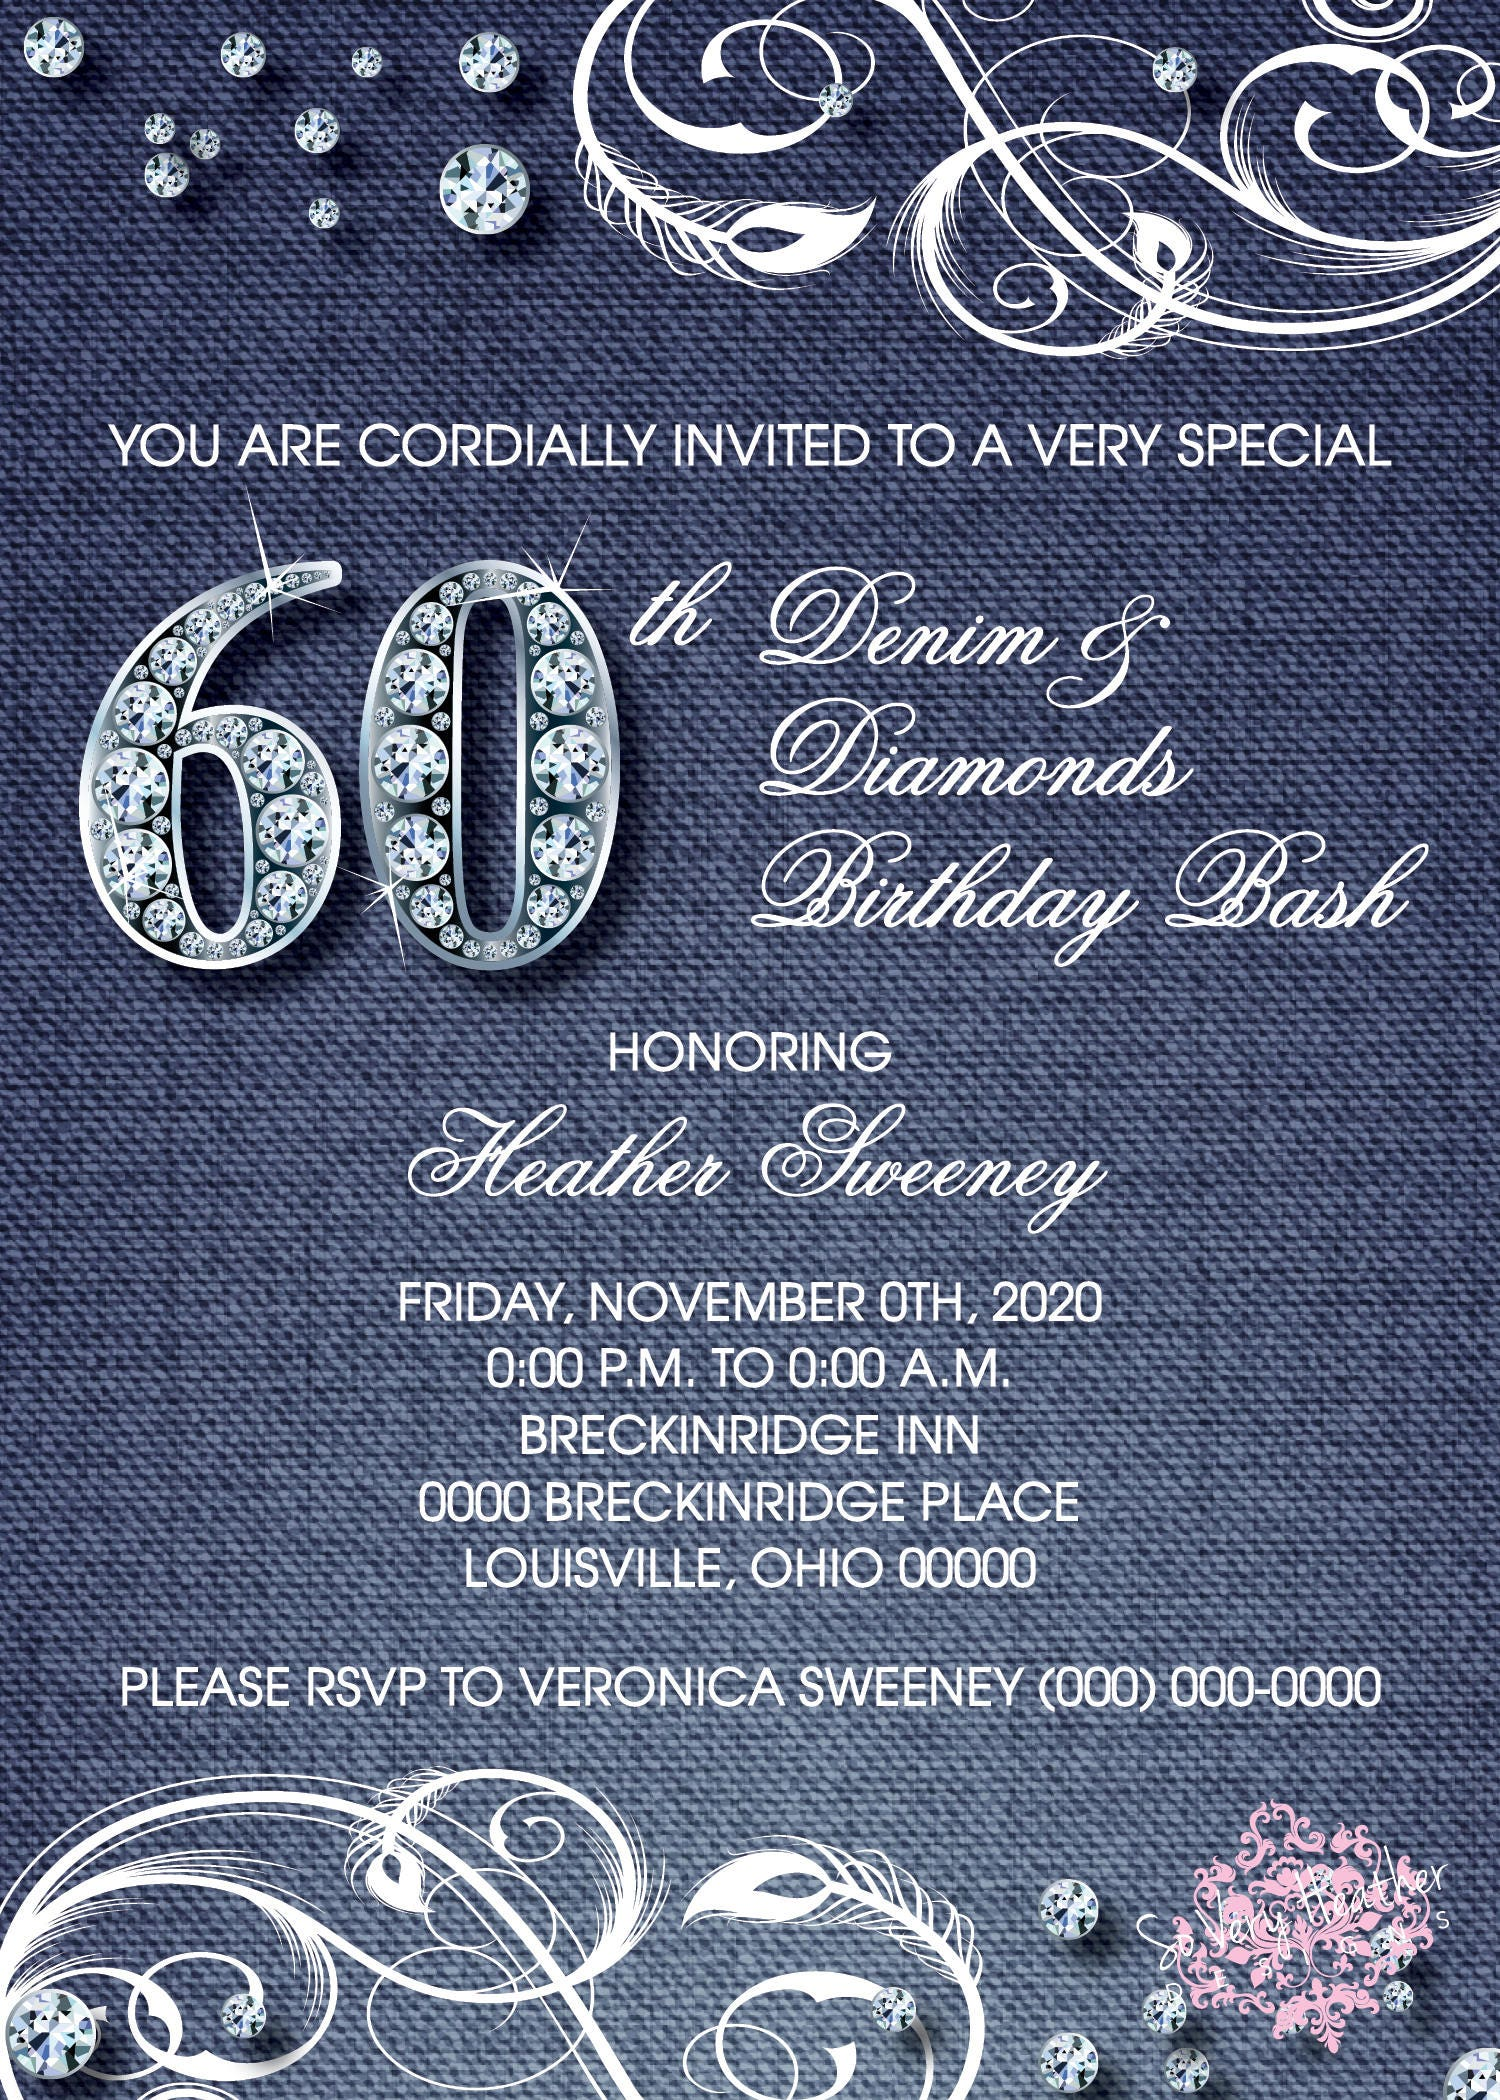 denim and diamonds adult birthday party invitation digital file or printed